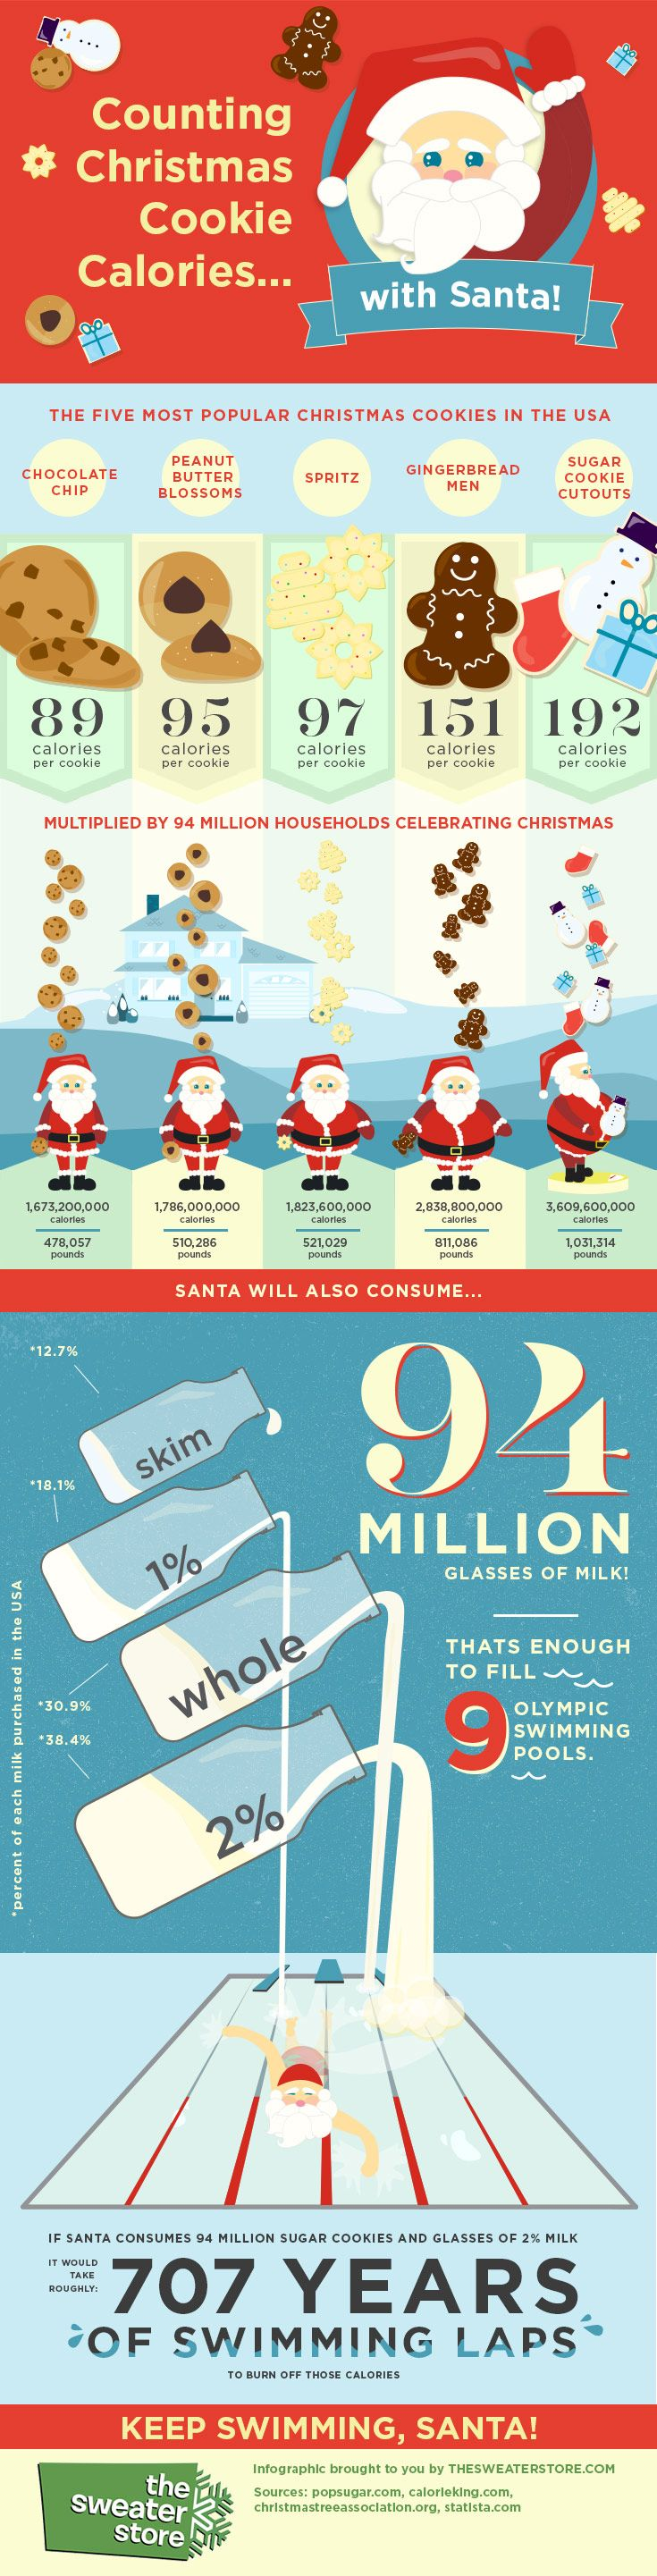 Counting Christmas Cookie Calories With Santa #infographic